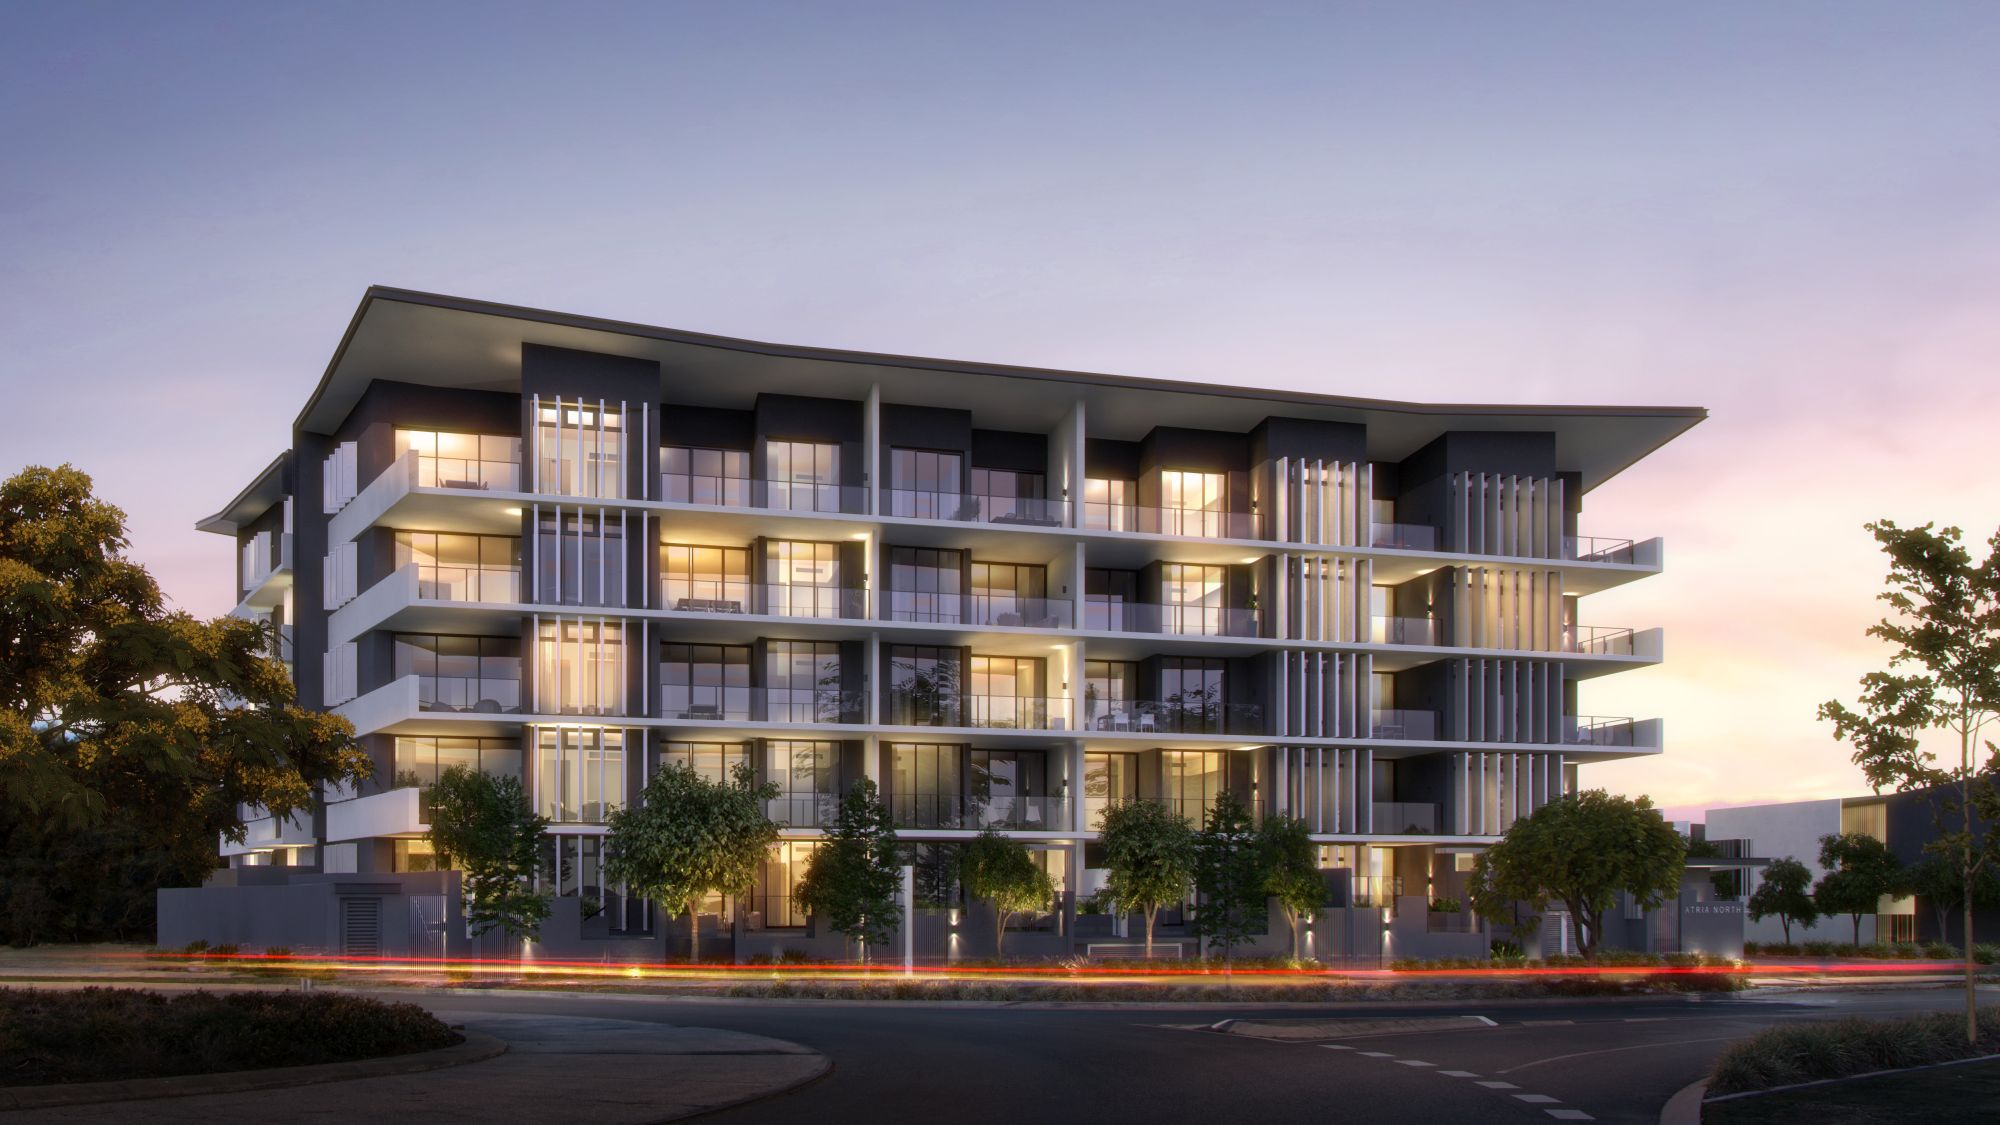 Atria North, Hamilton Reach, Queensland, Frasers Property Australia